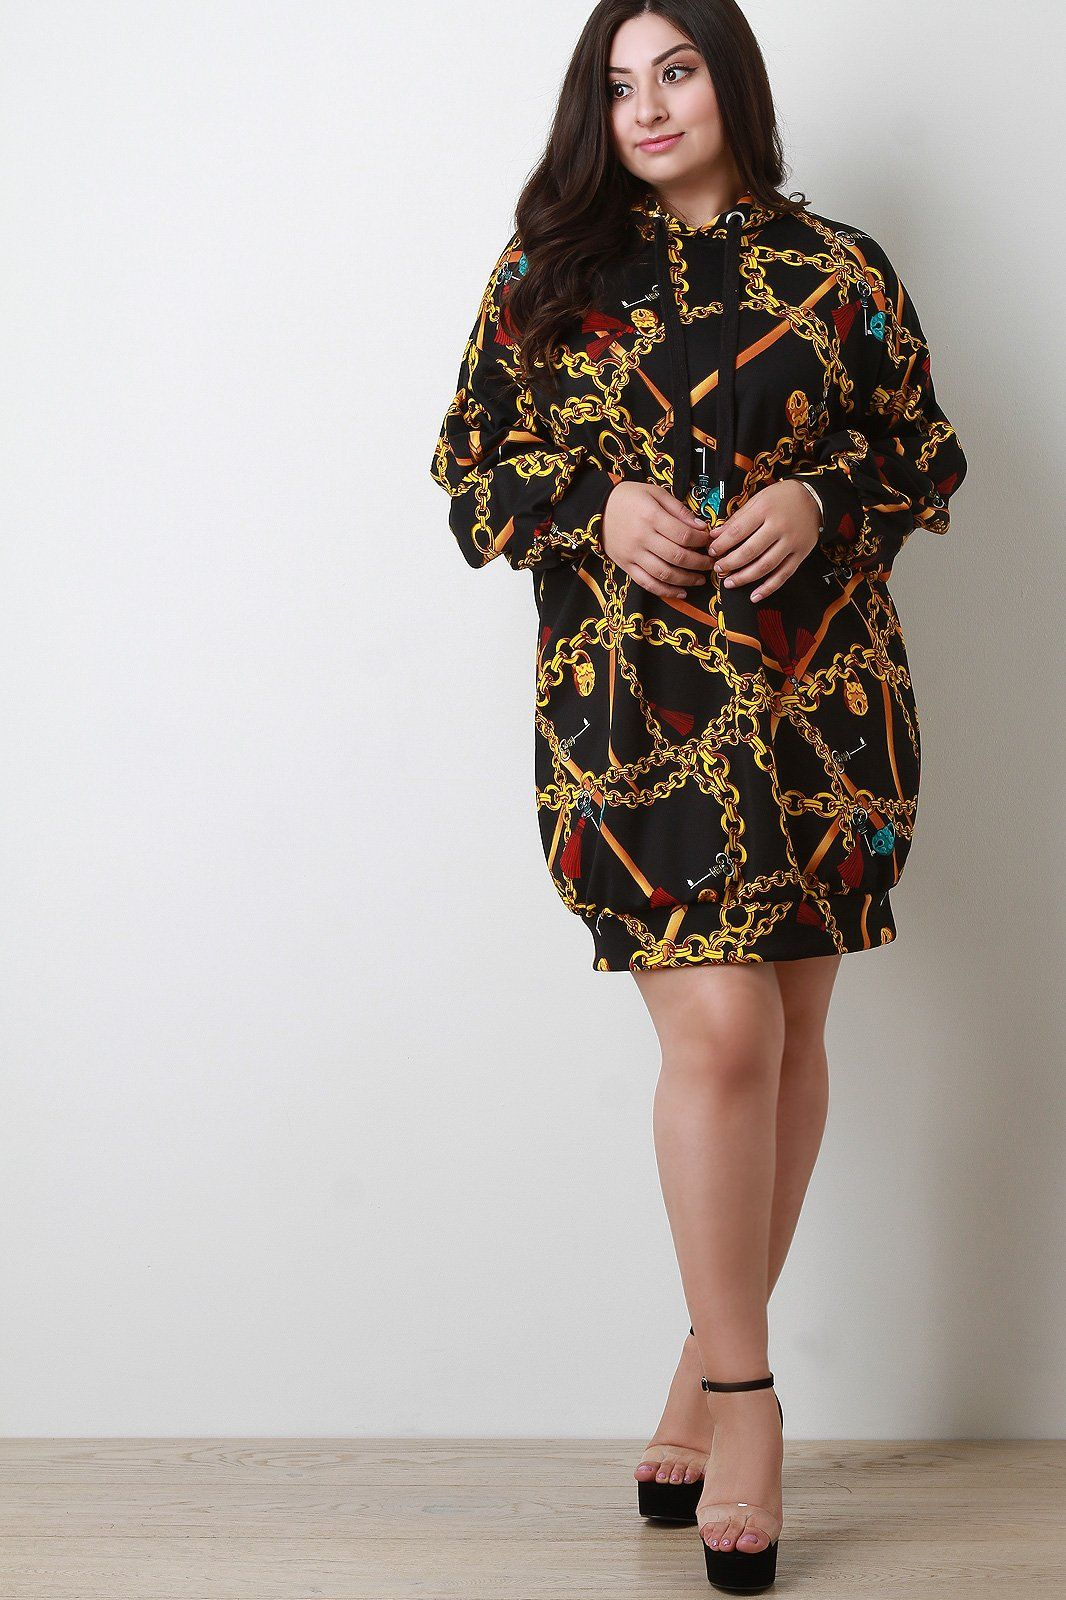 dc69bce623b This plus size dress features a smooth stretchy knit with chains print